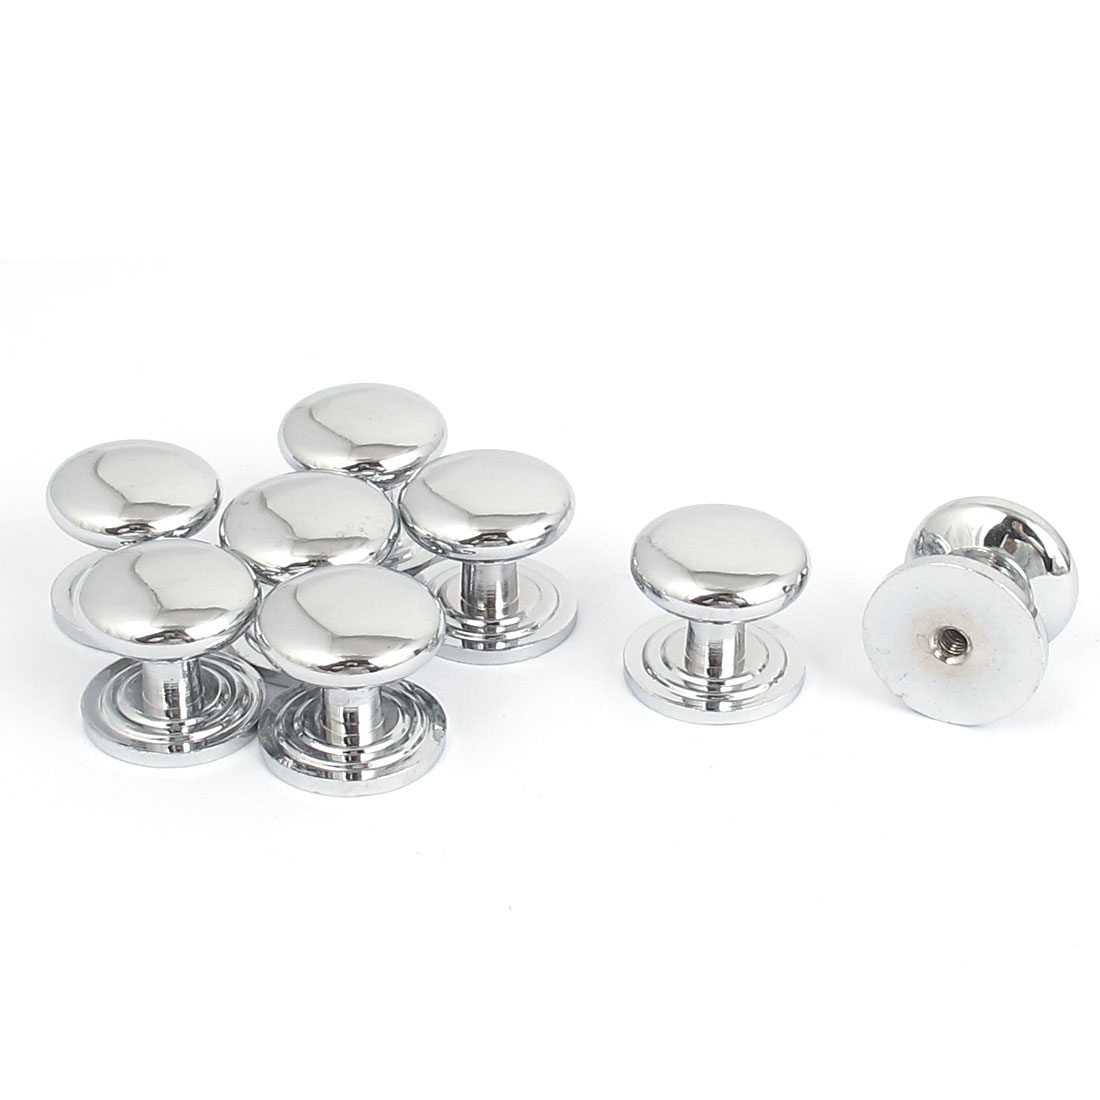 Door Drawer Cabinet Wardrobe 22mm Head Diameter Pull Handle Knob 8pcs